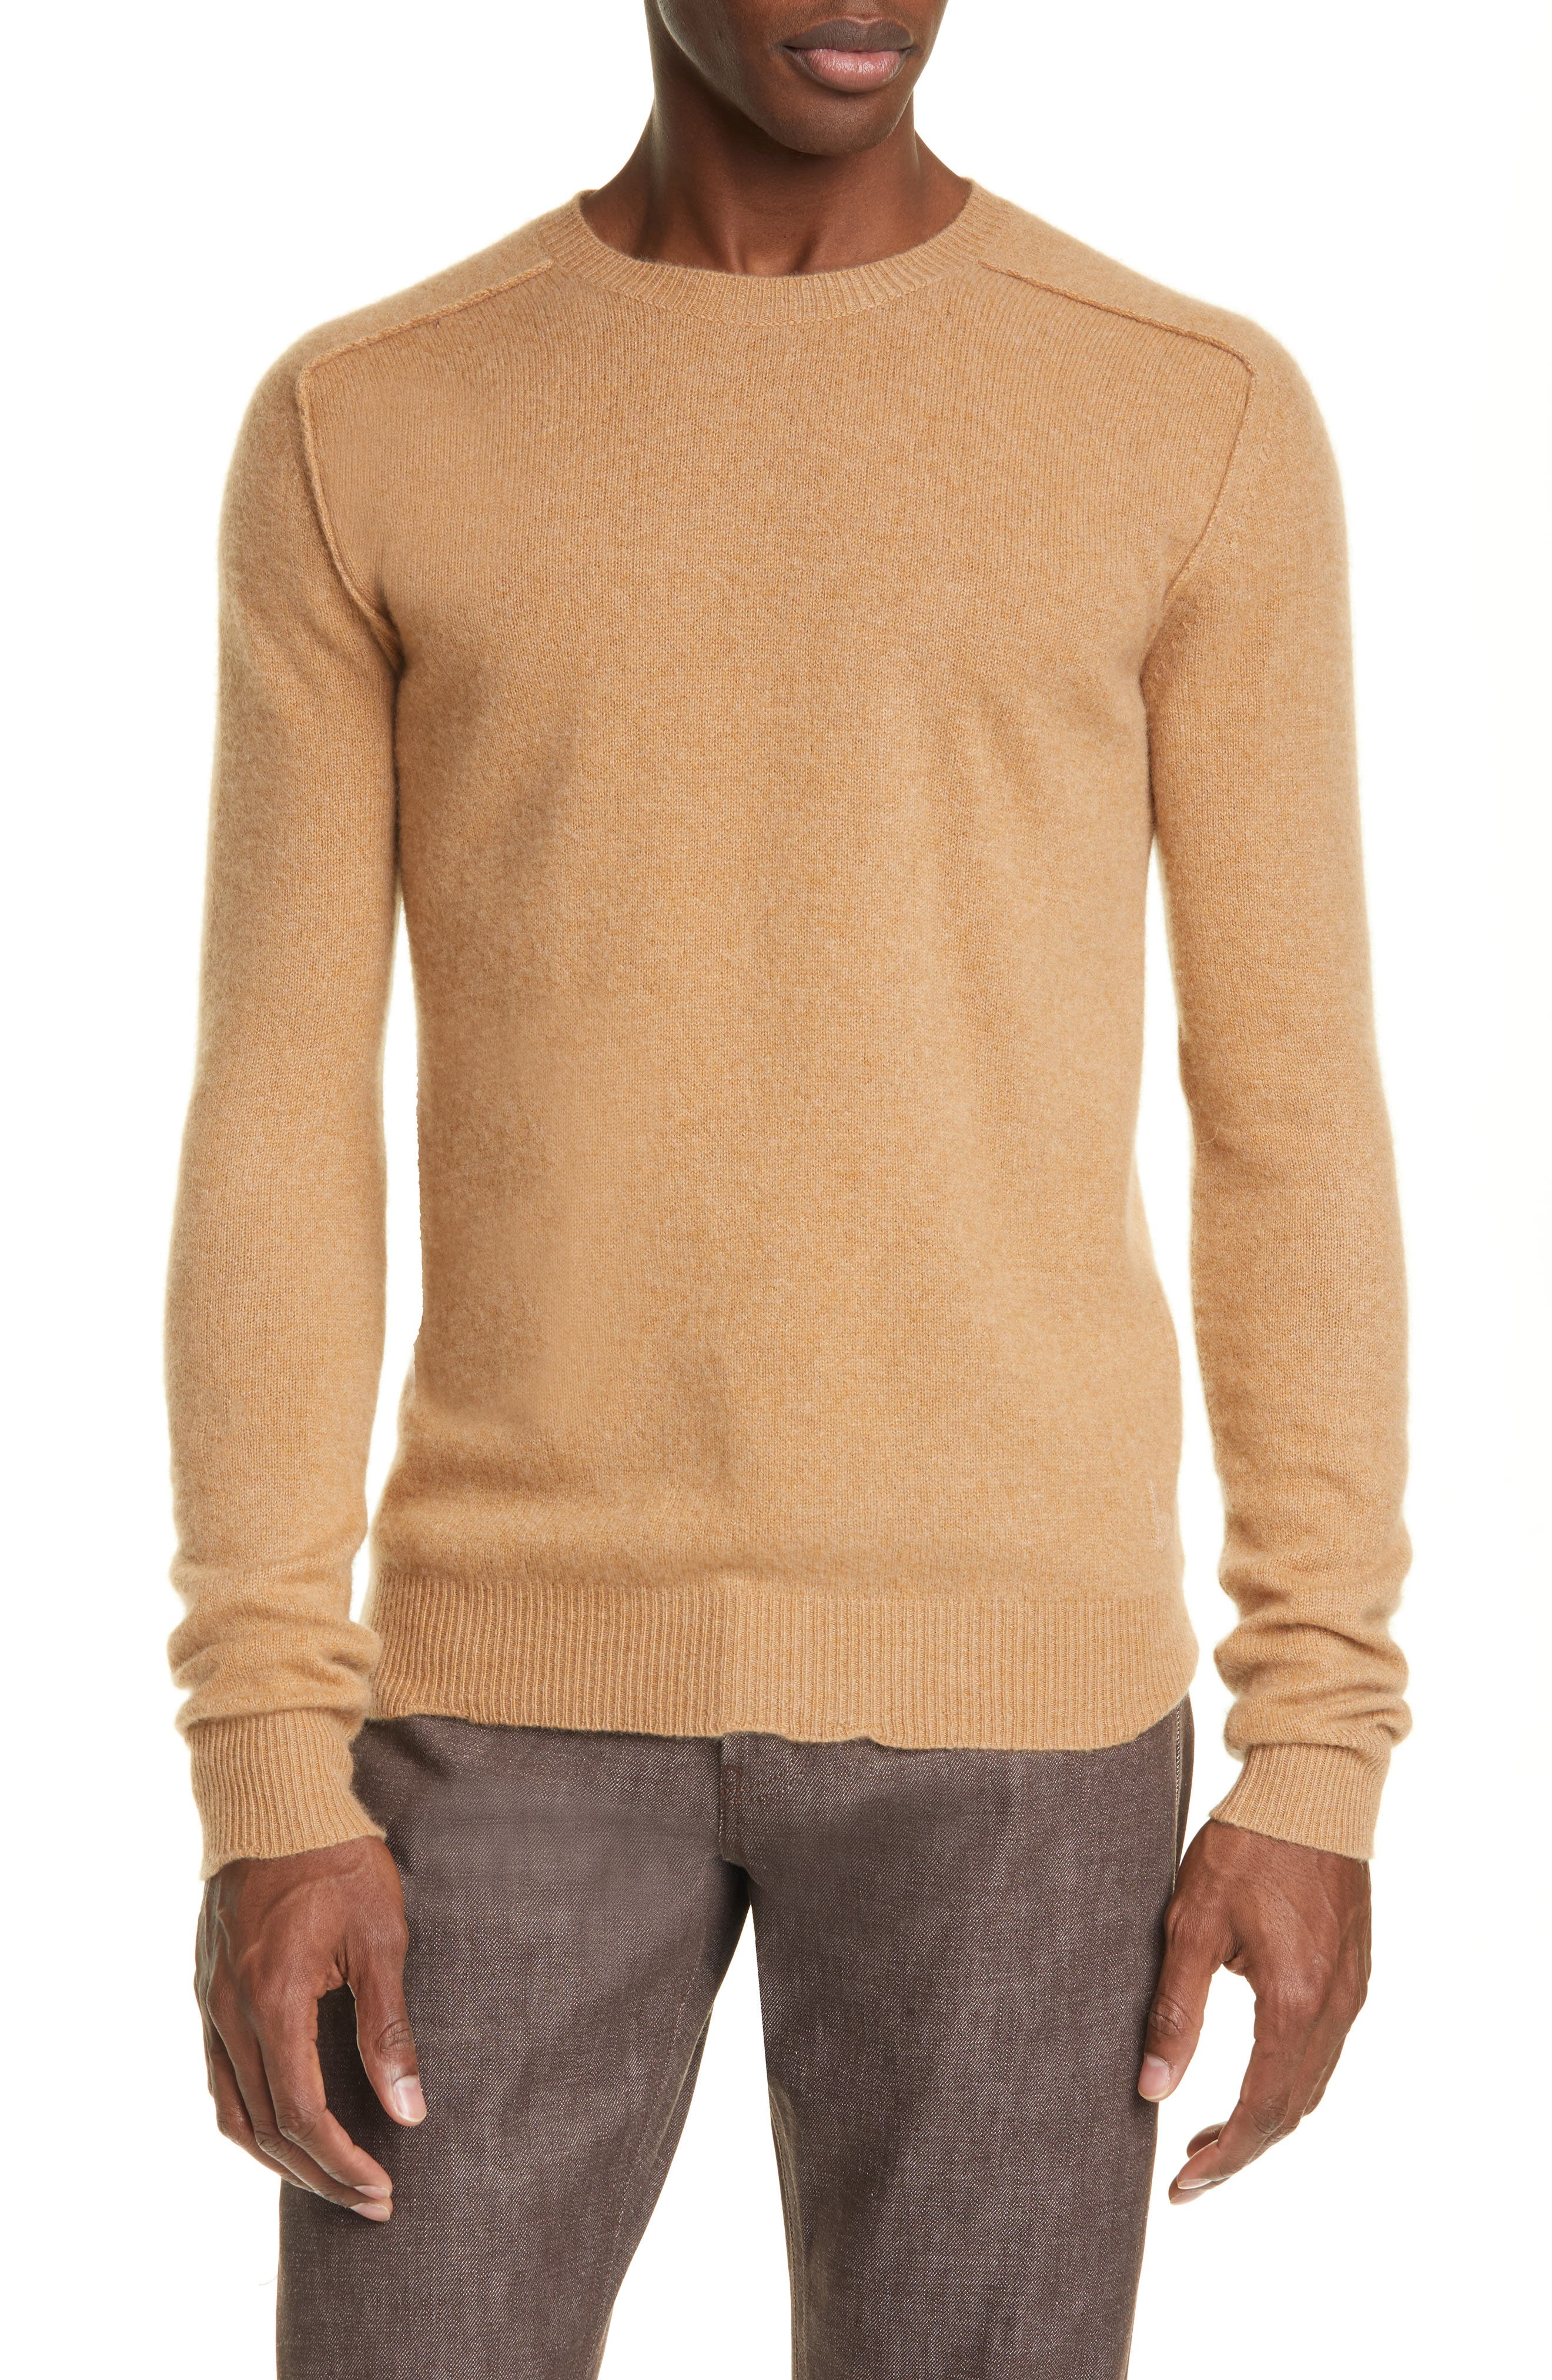 A finely knit Italian-made sweater in a classic silhouette is made from pure cashmere for wonderful softness. Style Name: Bottega Veneta Core Cashmere Pullover Sweater. Style Number: 5959773. Available in stores.